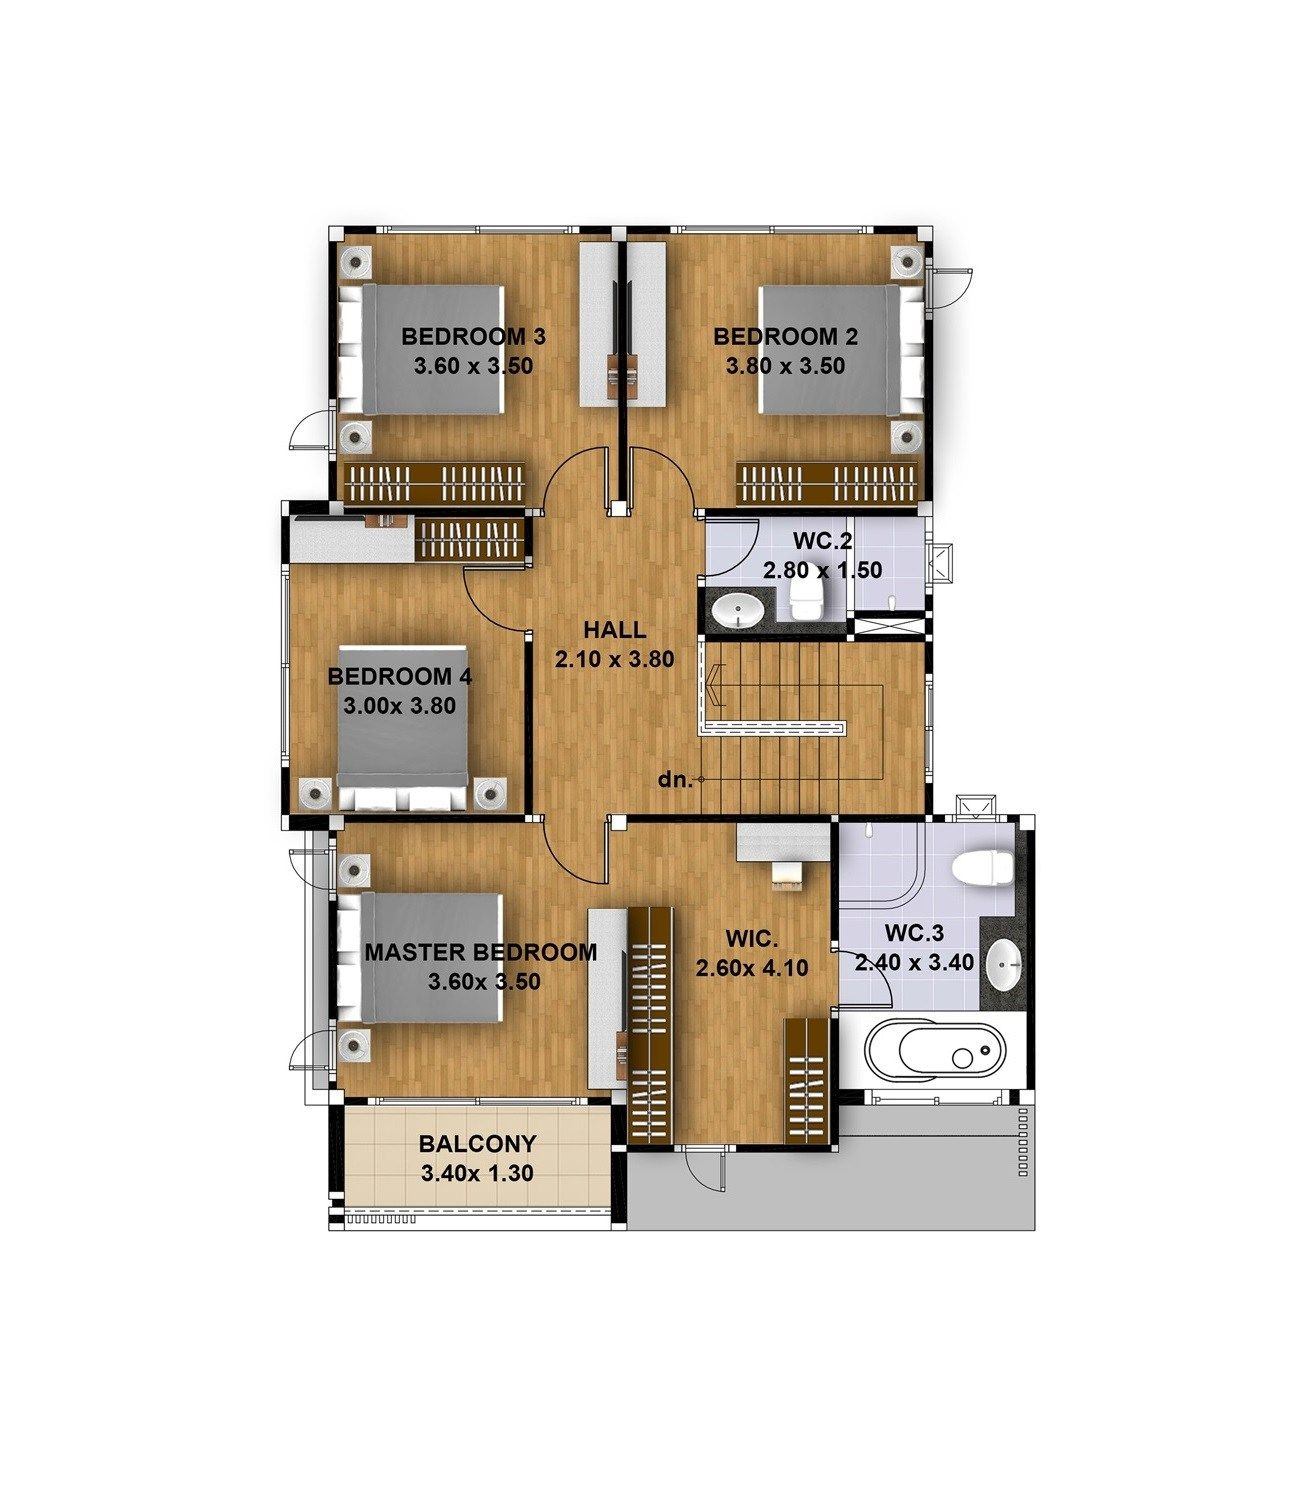 House Design 3d 13x16 With 5 Bedrooms Tiny House Design 3d House Design Tiny House Design Design